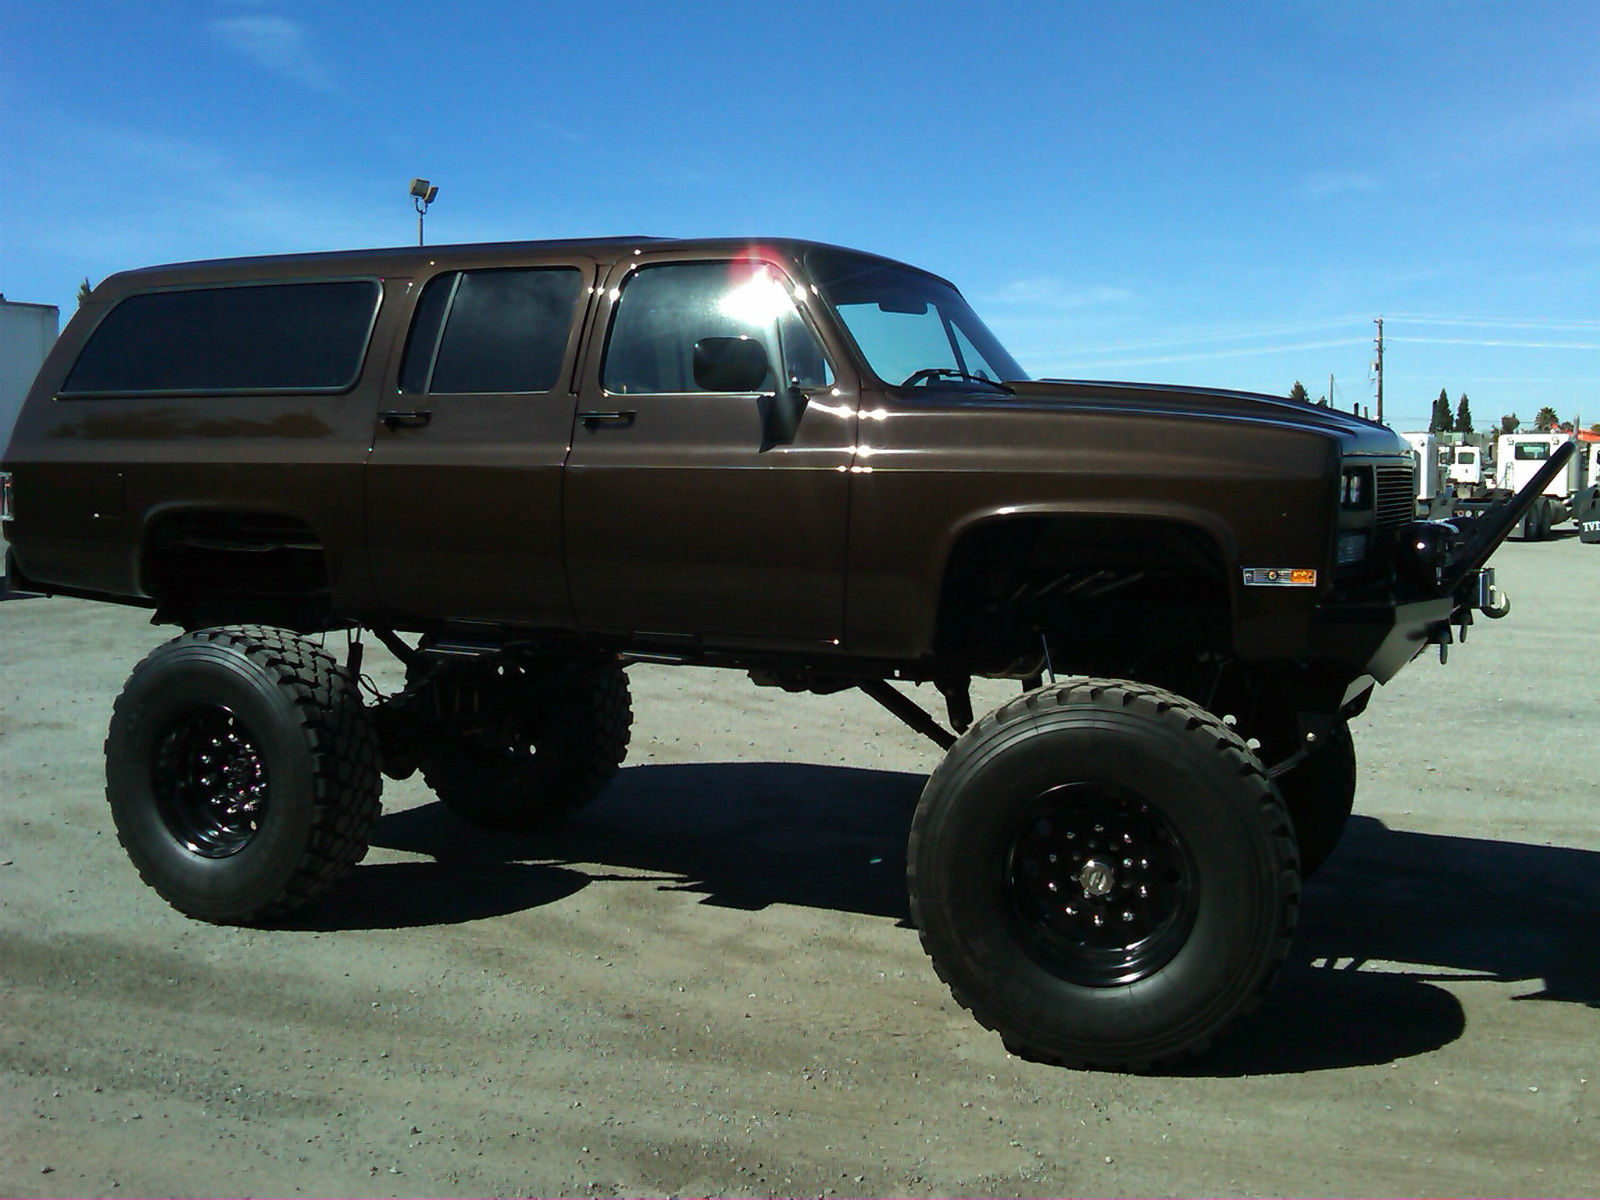 1973 Chevrolet Suburban Monster 4×4 1 Ton for sale